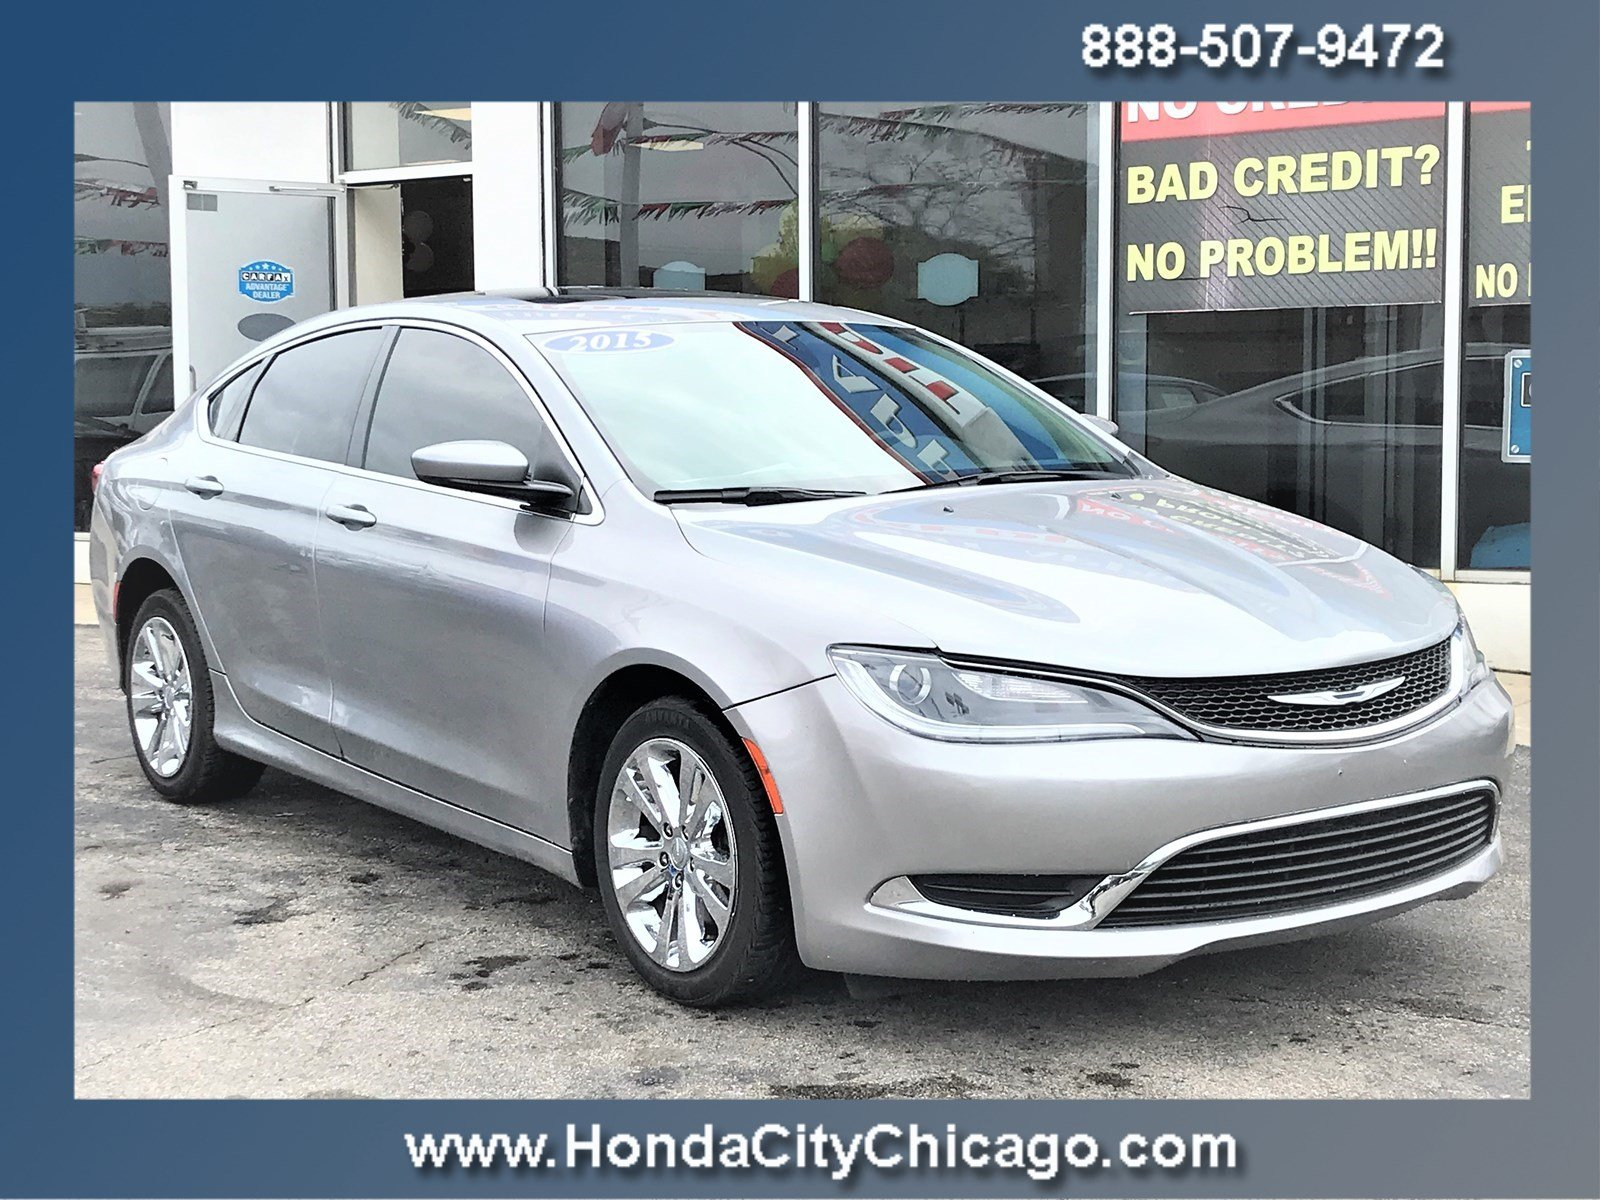 2015 Chrysler 200 For Sale >> Used 2015 Chrysler 200 Limited For Sale In Chicago Il Near Morton Grove Lisle Highland Il Vin 1c3cccab0fn679161